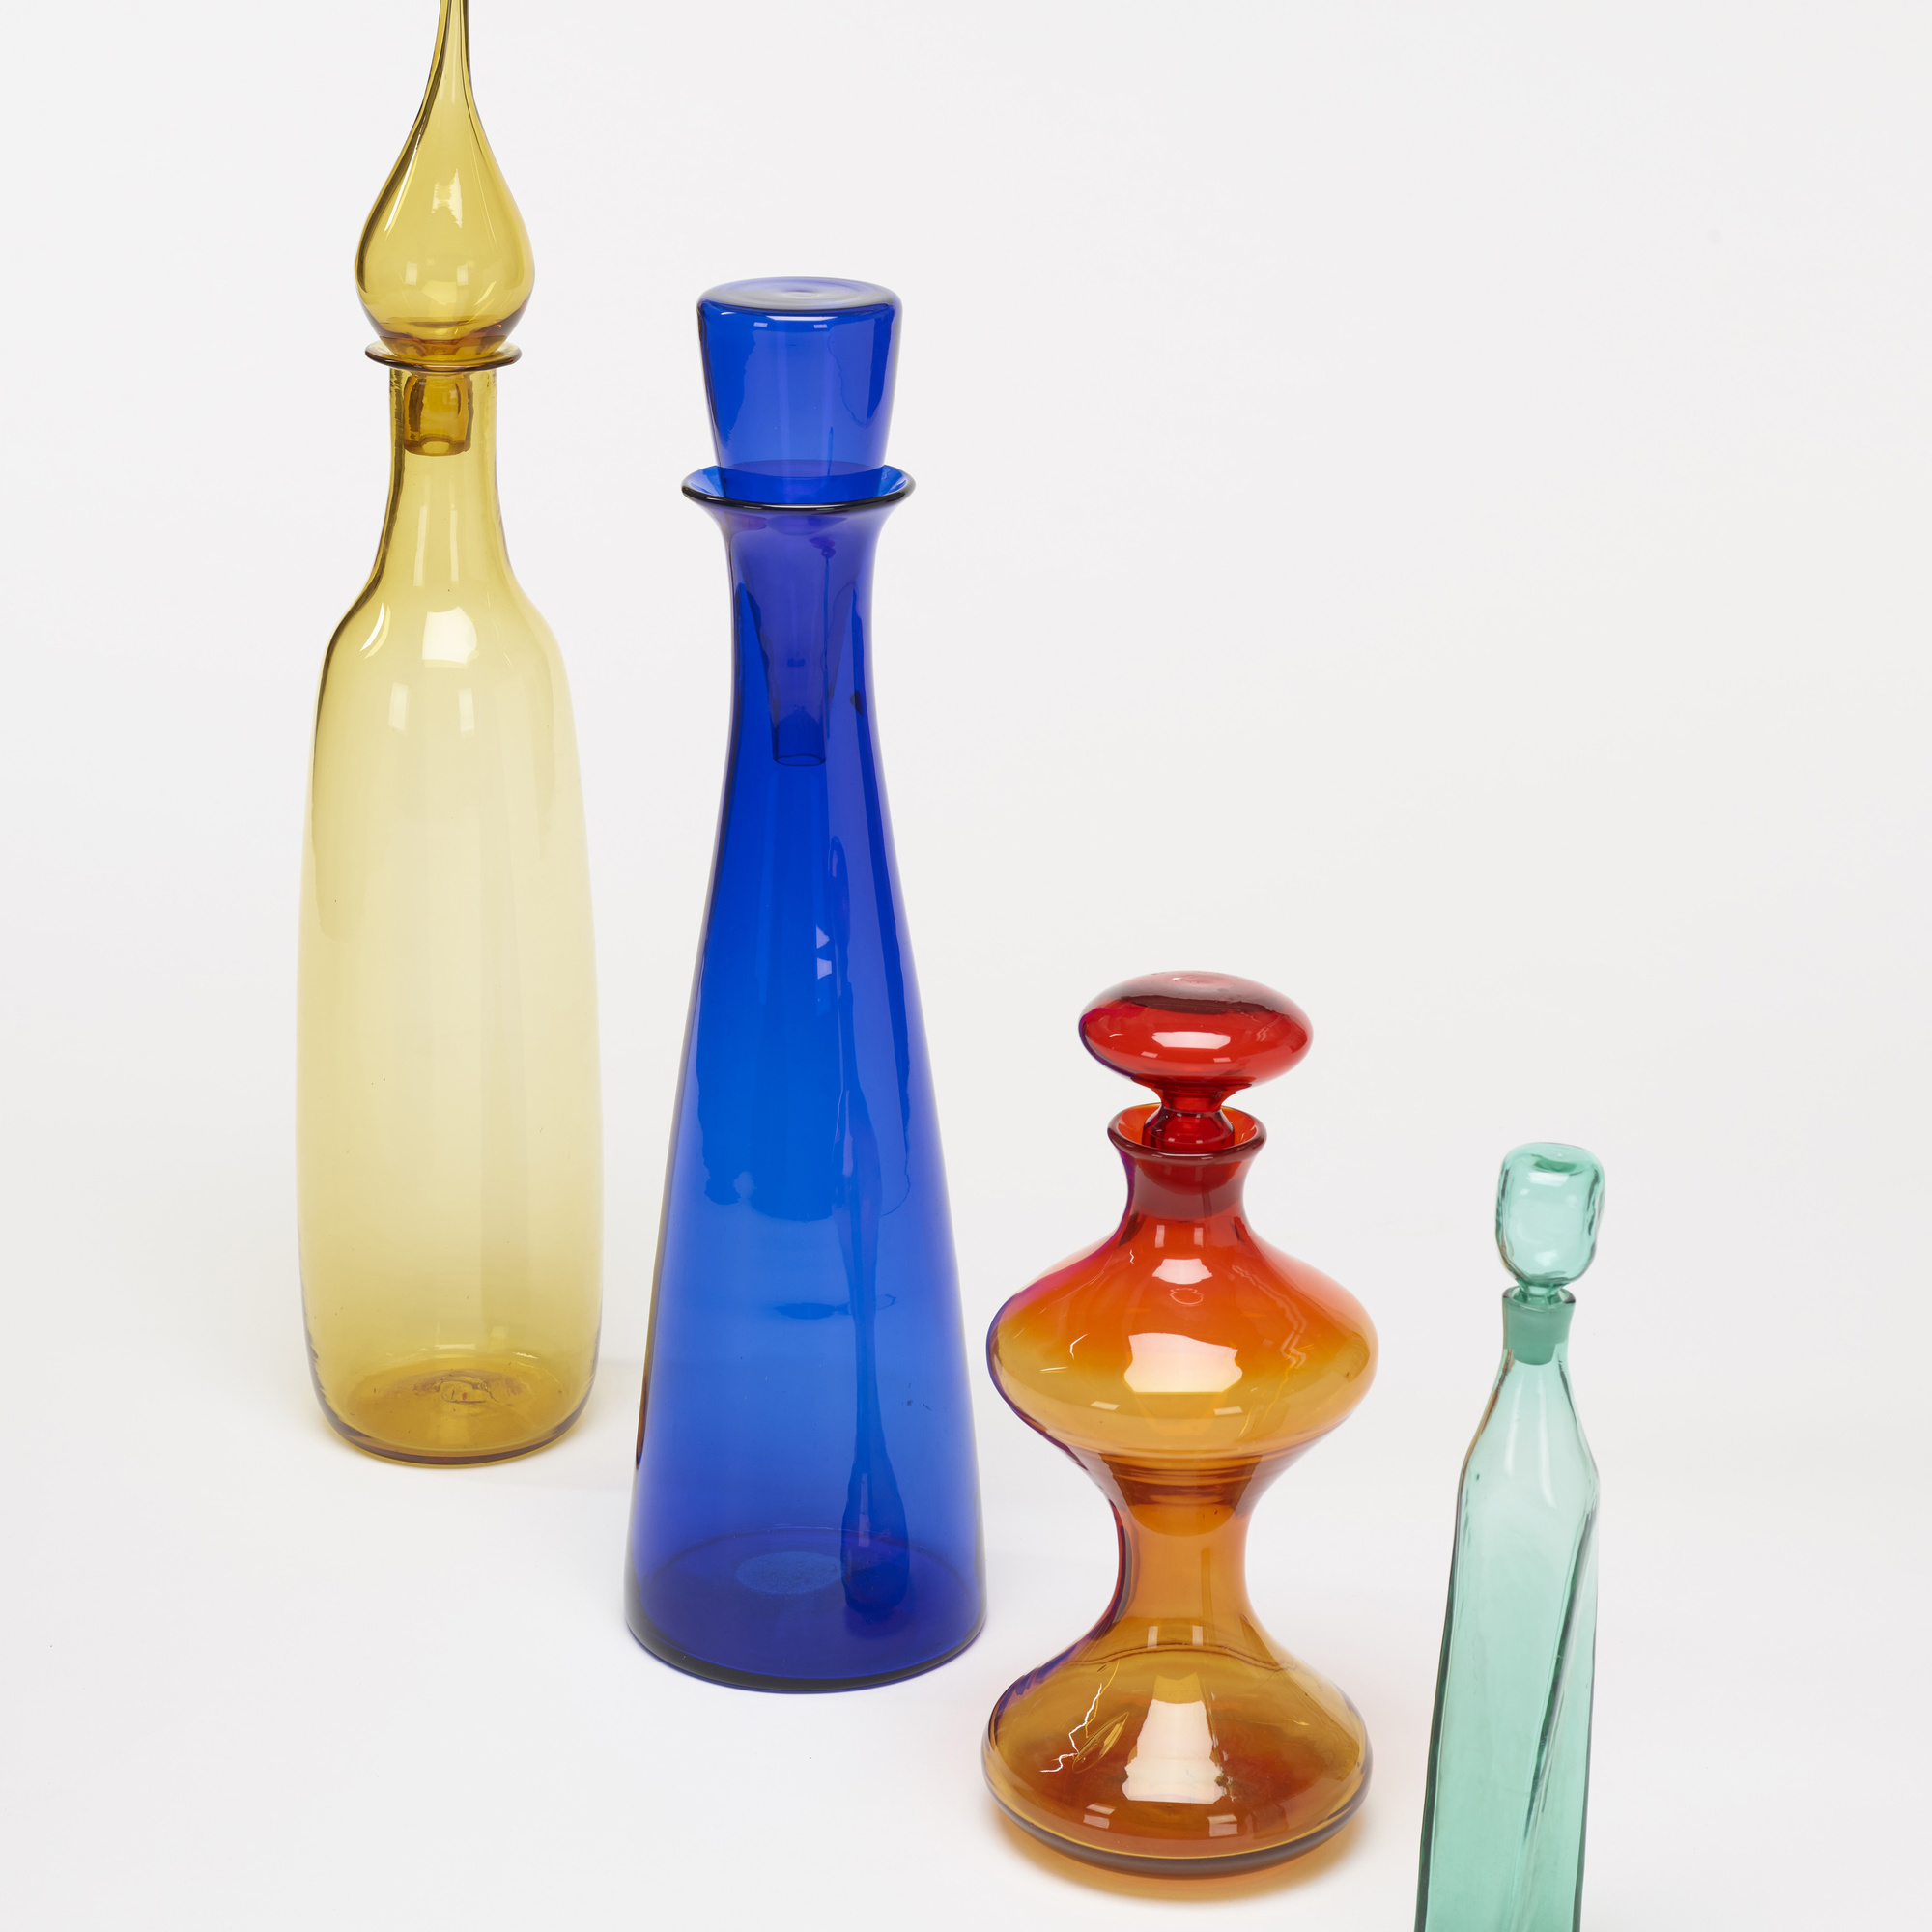 176: Blenko Glass Company / collection of four bottles (2 of 2)